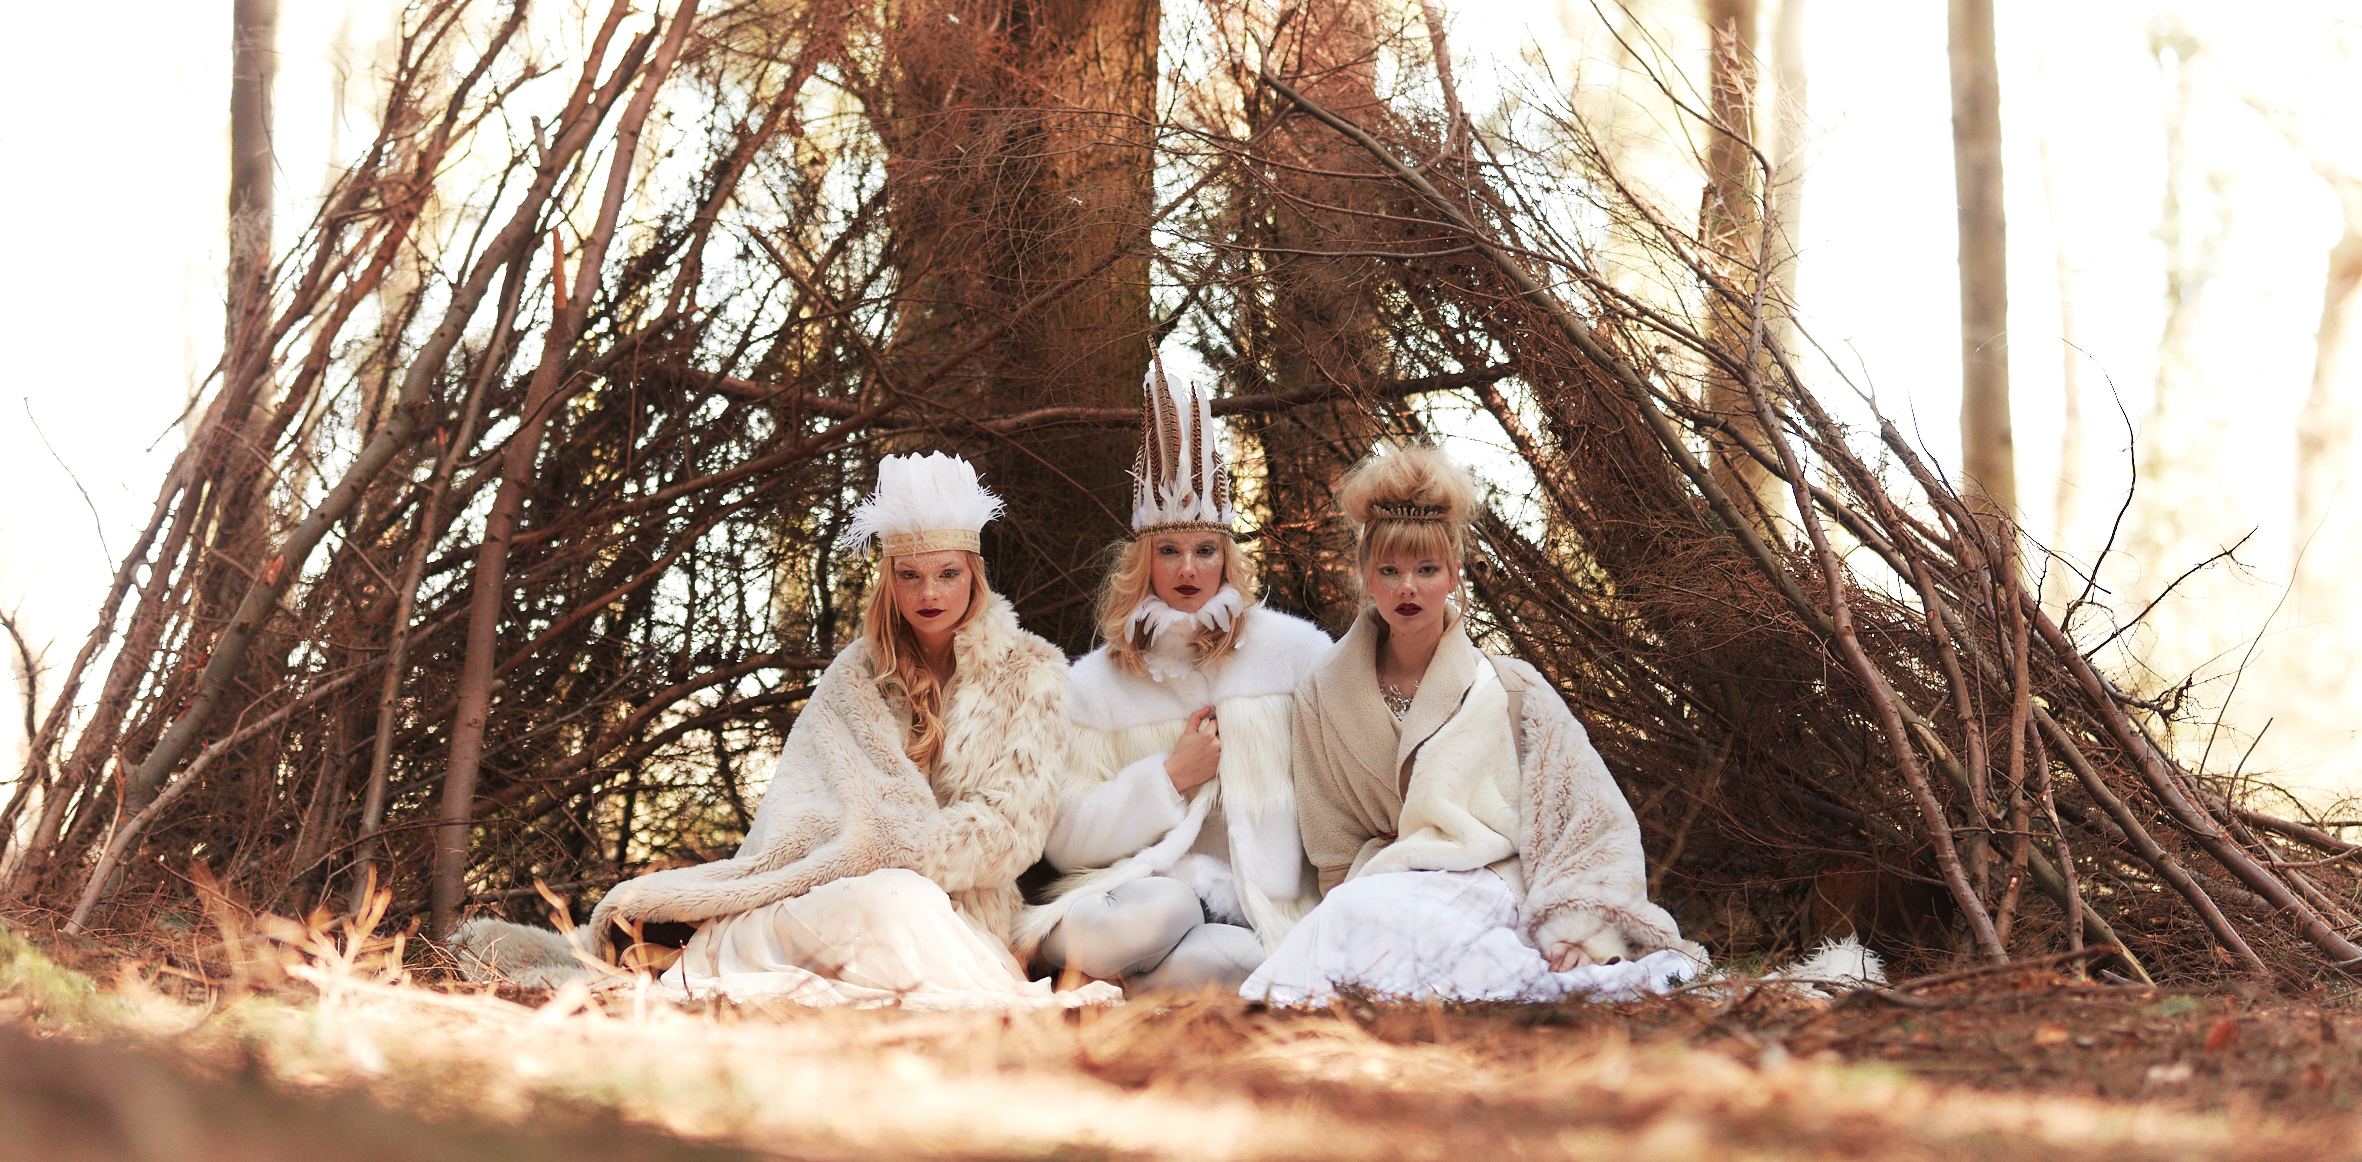 Emily Smith, Meredith Pickett and Georgia B in the woods for Sandra Reynolds Model Agency